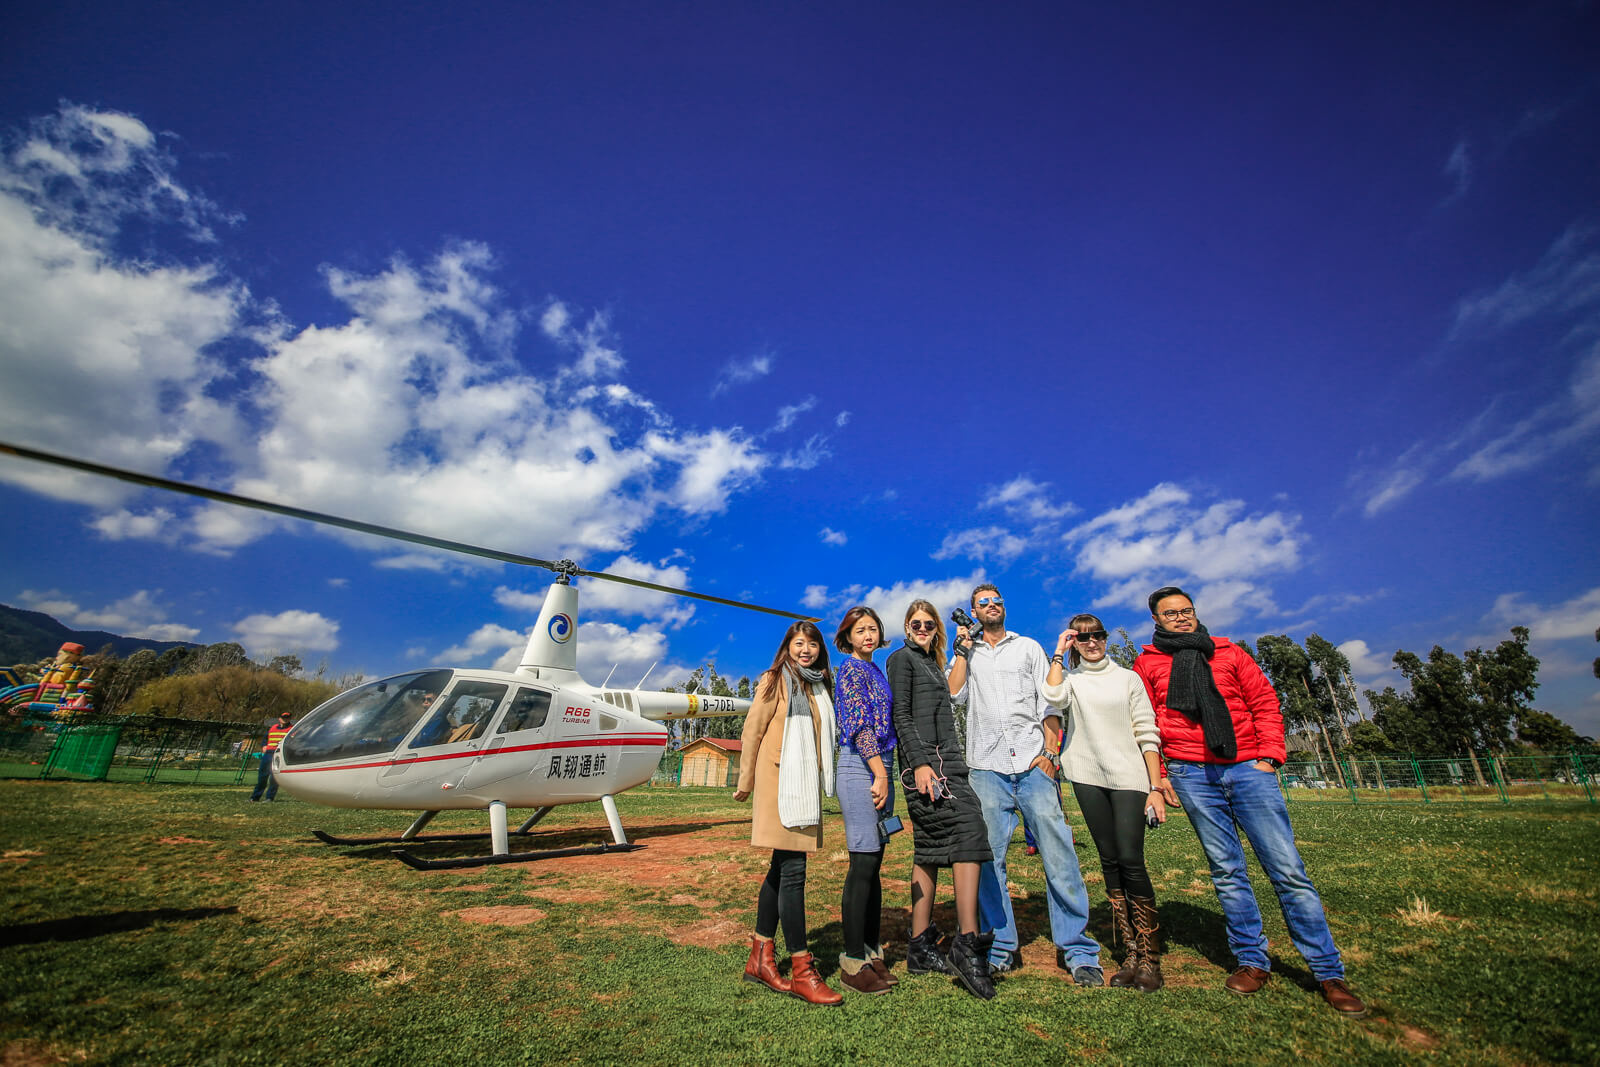 Helicopter ride of Haigeng Park in Kunming, Yunnan province, China